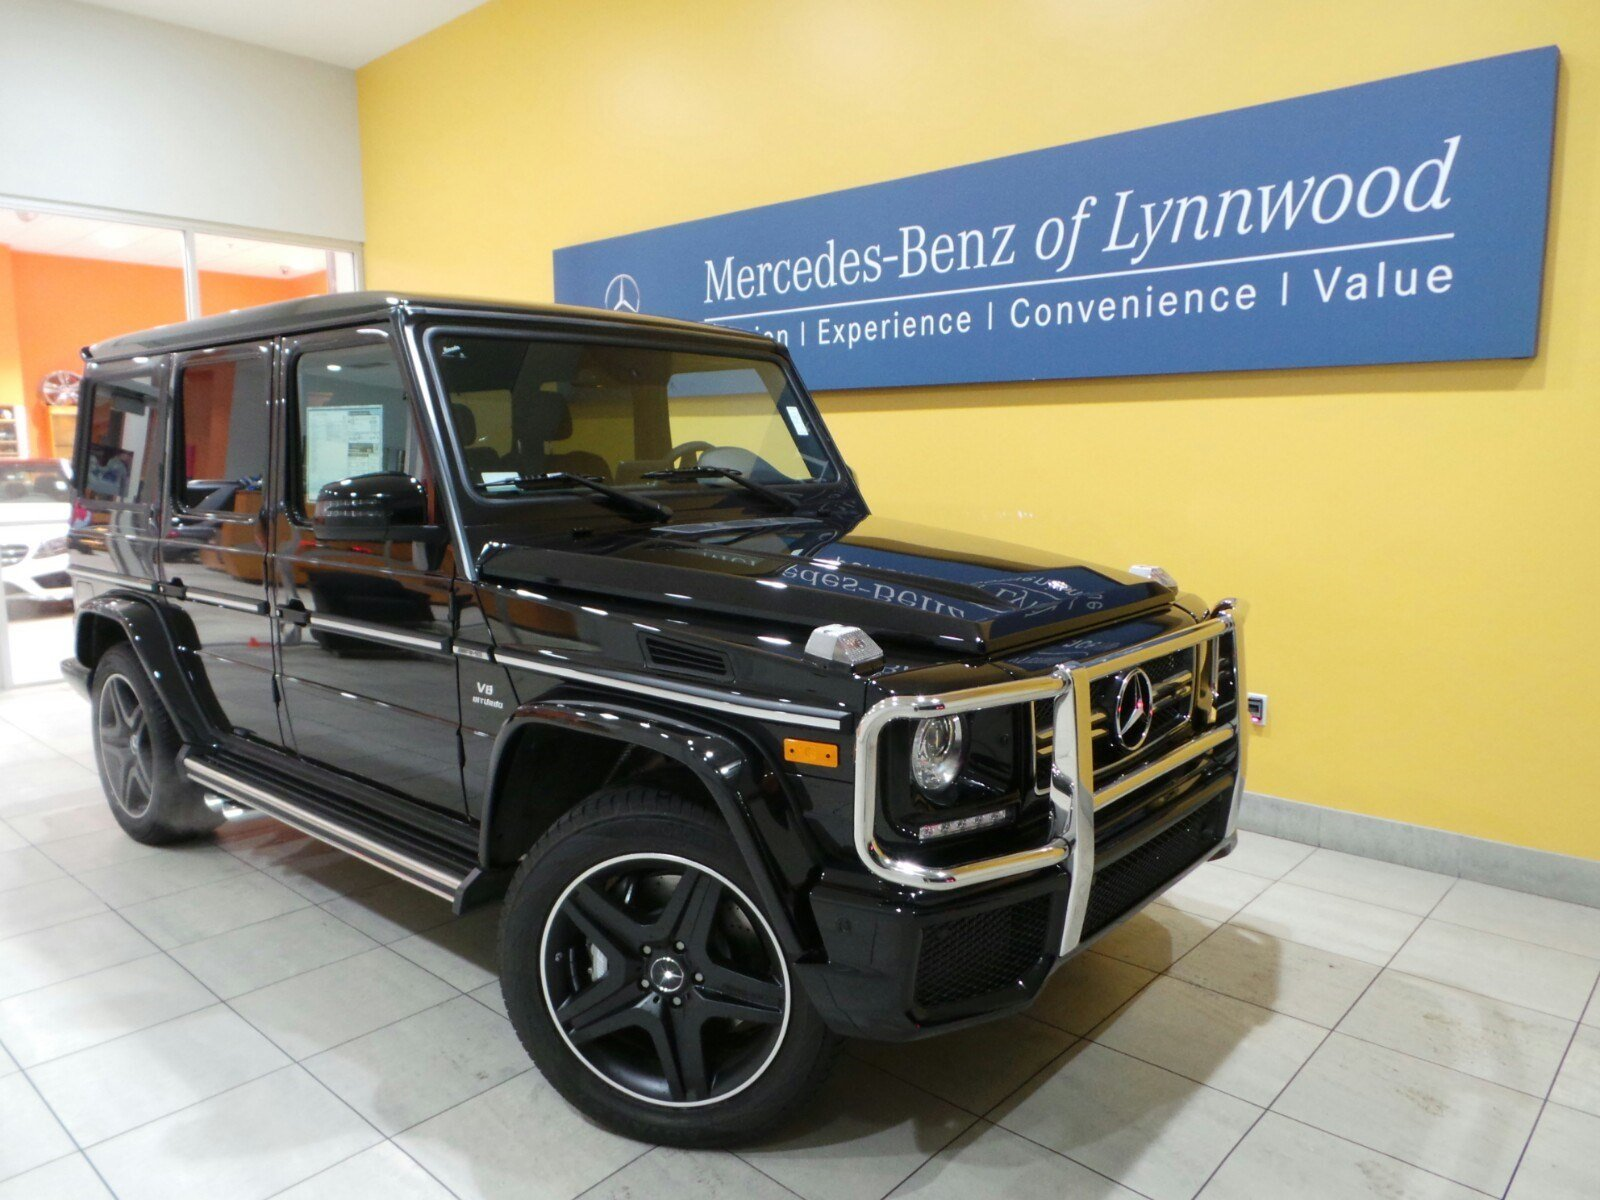 New 2017 mercedes benz g class amg g63 4matic suv in for Mercedes benz g63 amg suv